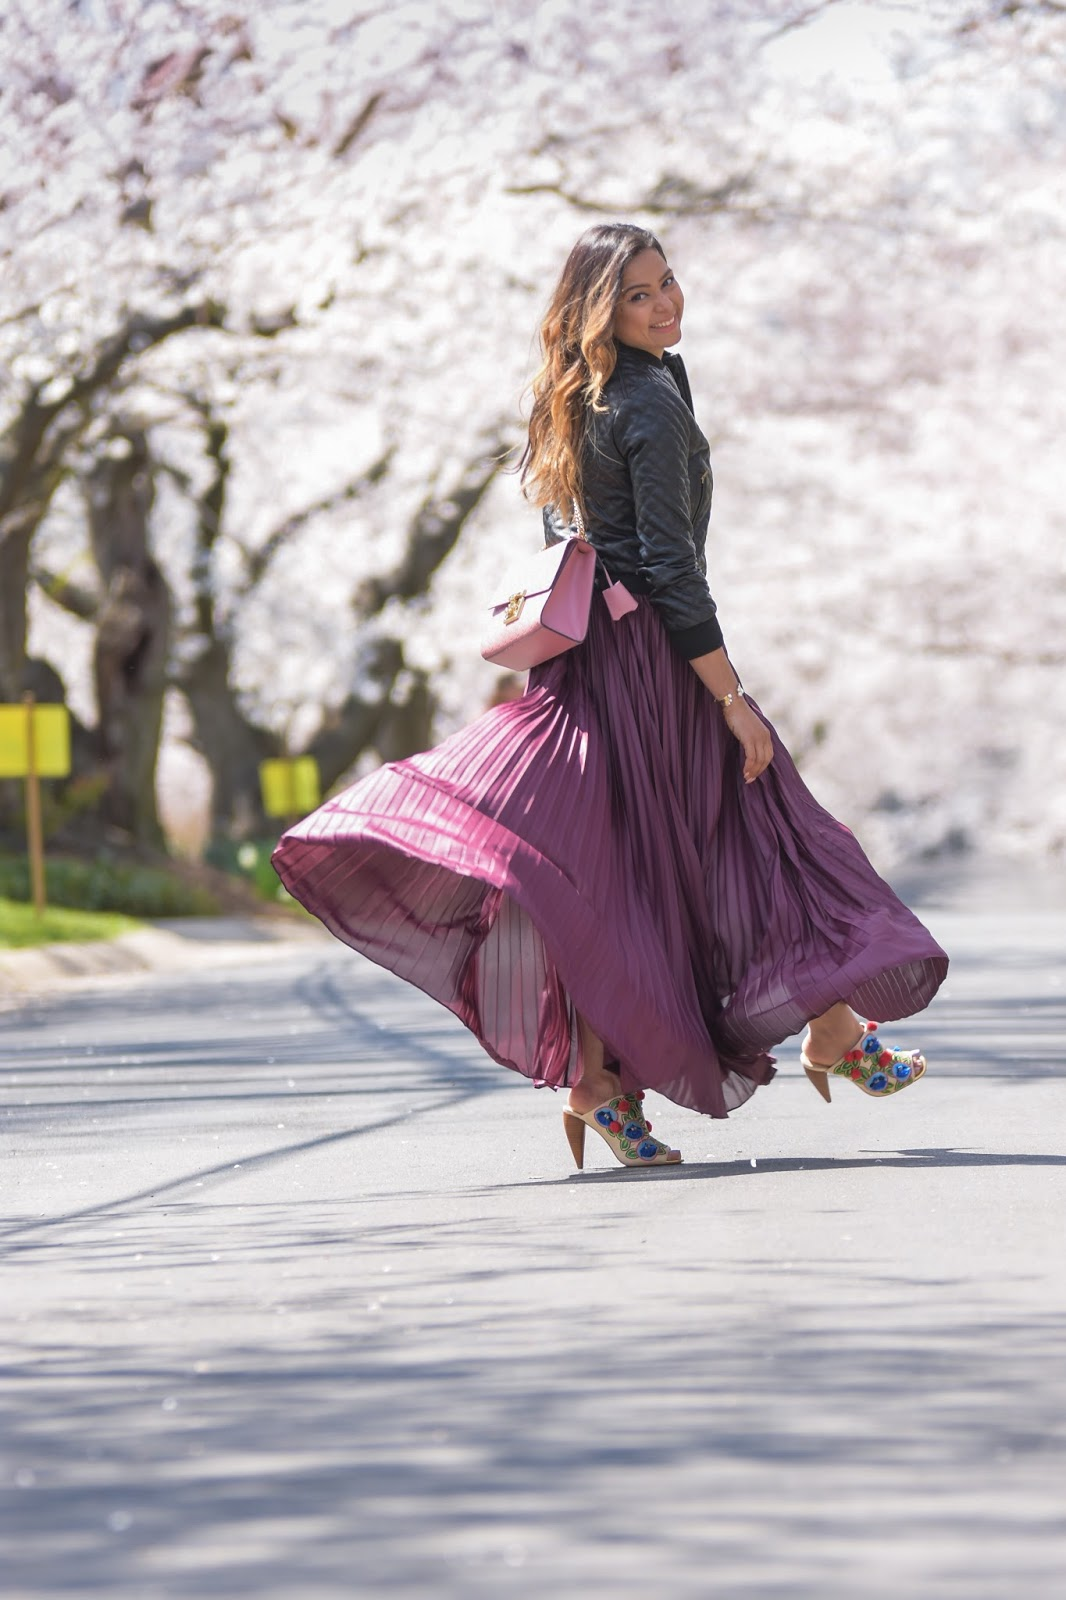 DC japanese cherry blossom festival, sakura, cherry blossom,, spring outfit, dc life, washington mag, lifestyle blogger, style blog, maxi pleated skirt, quilted bomber jacket, gucci marmont bag, balayage hair highlights, myriad musings